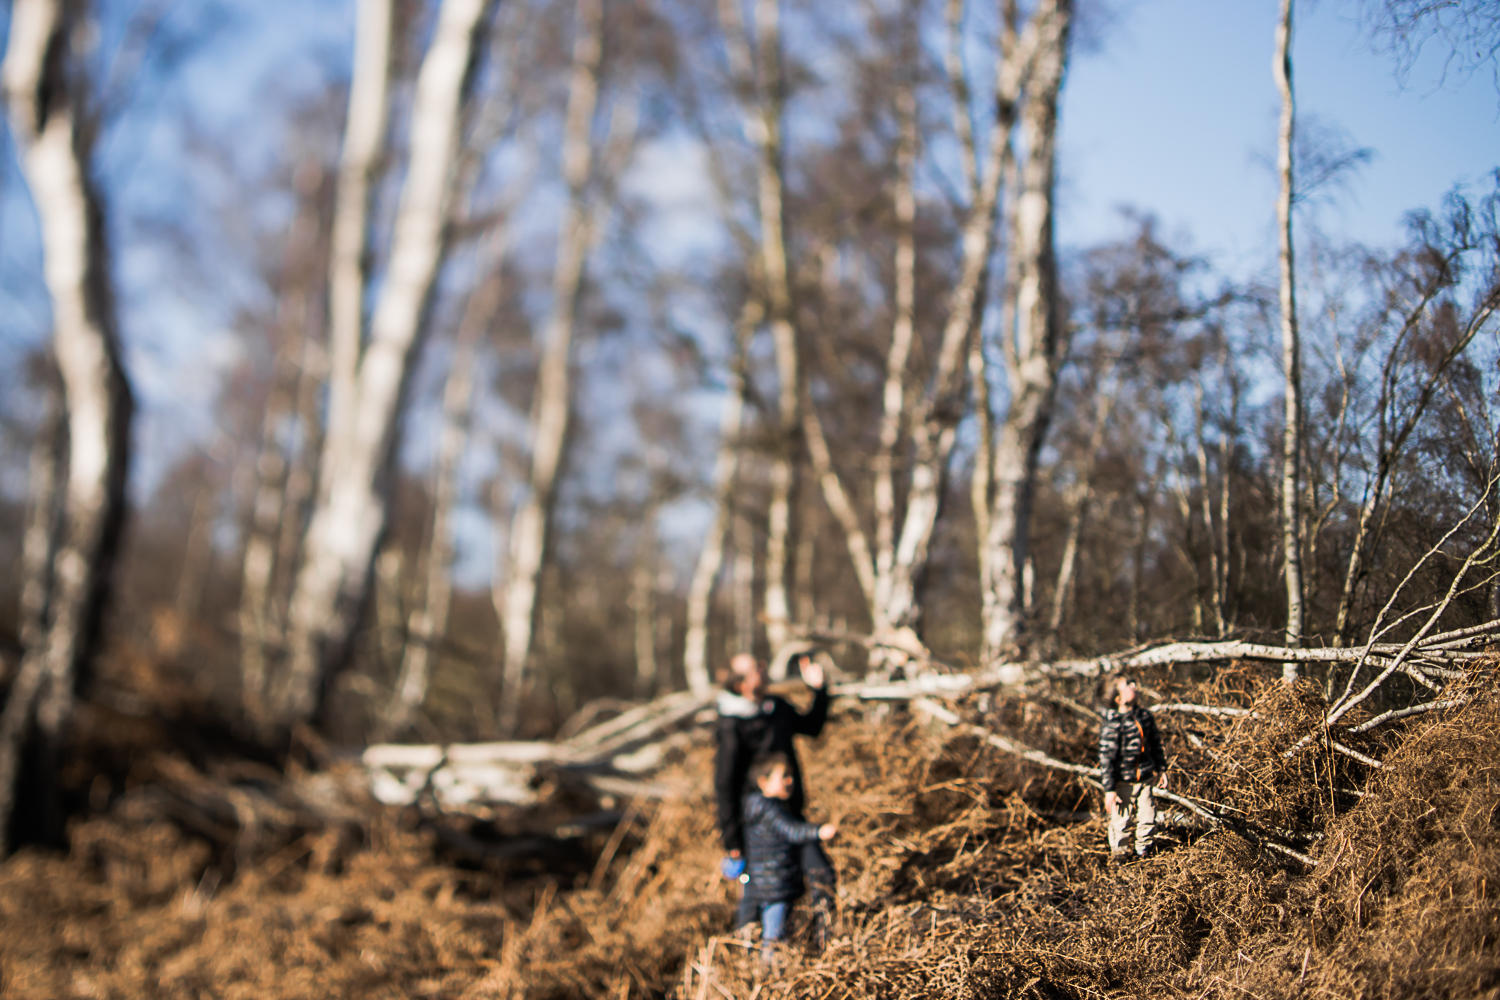 Freelensing woodland photograph